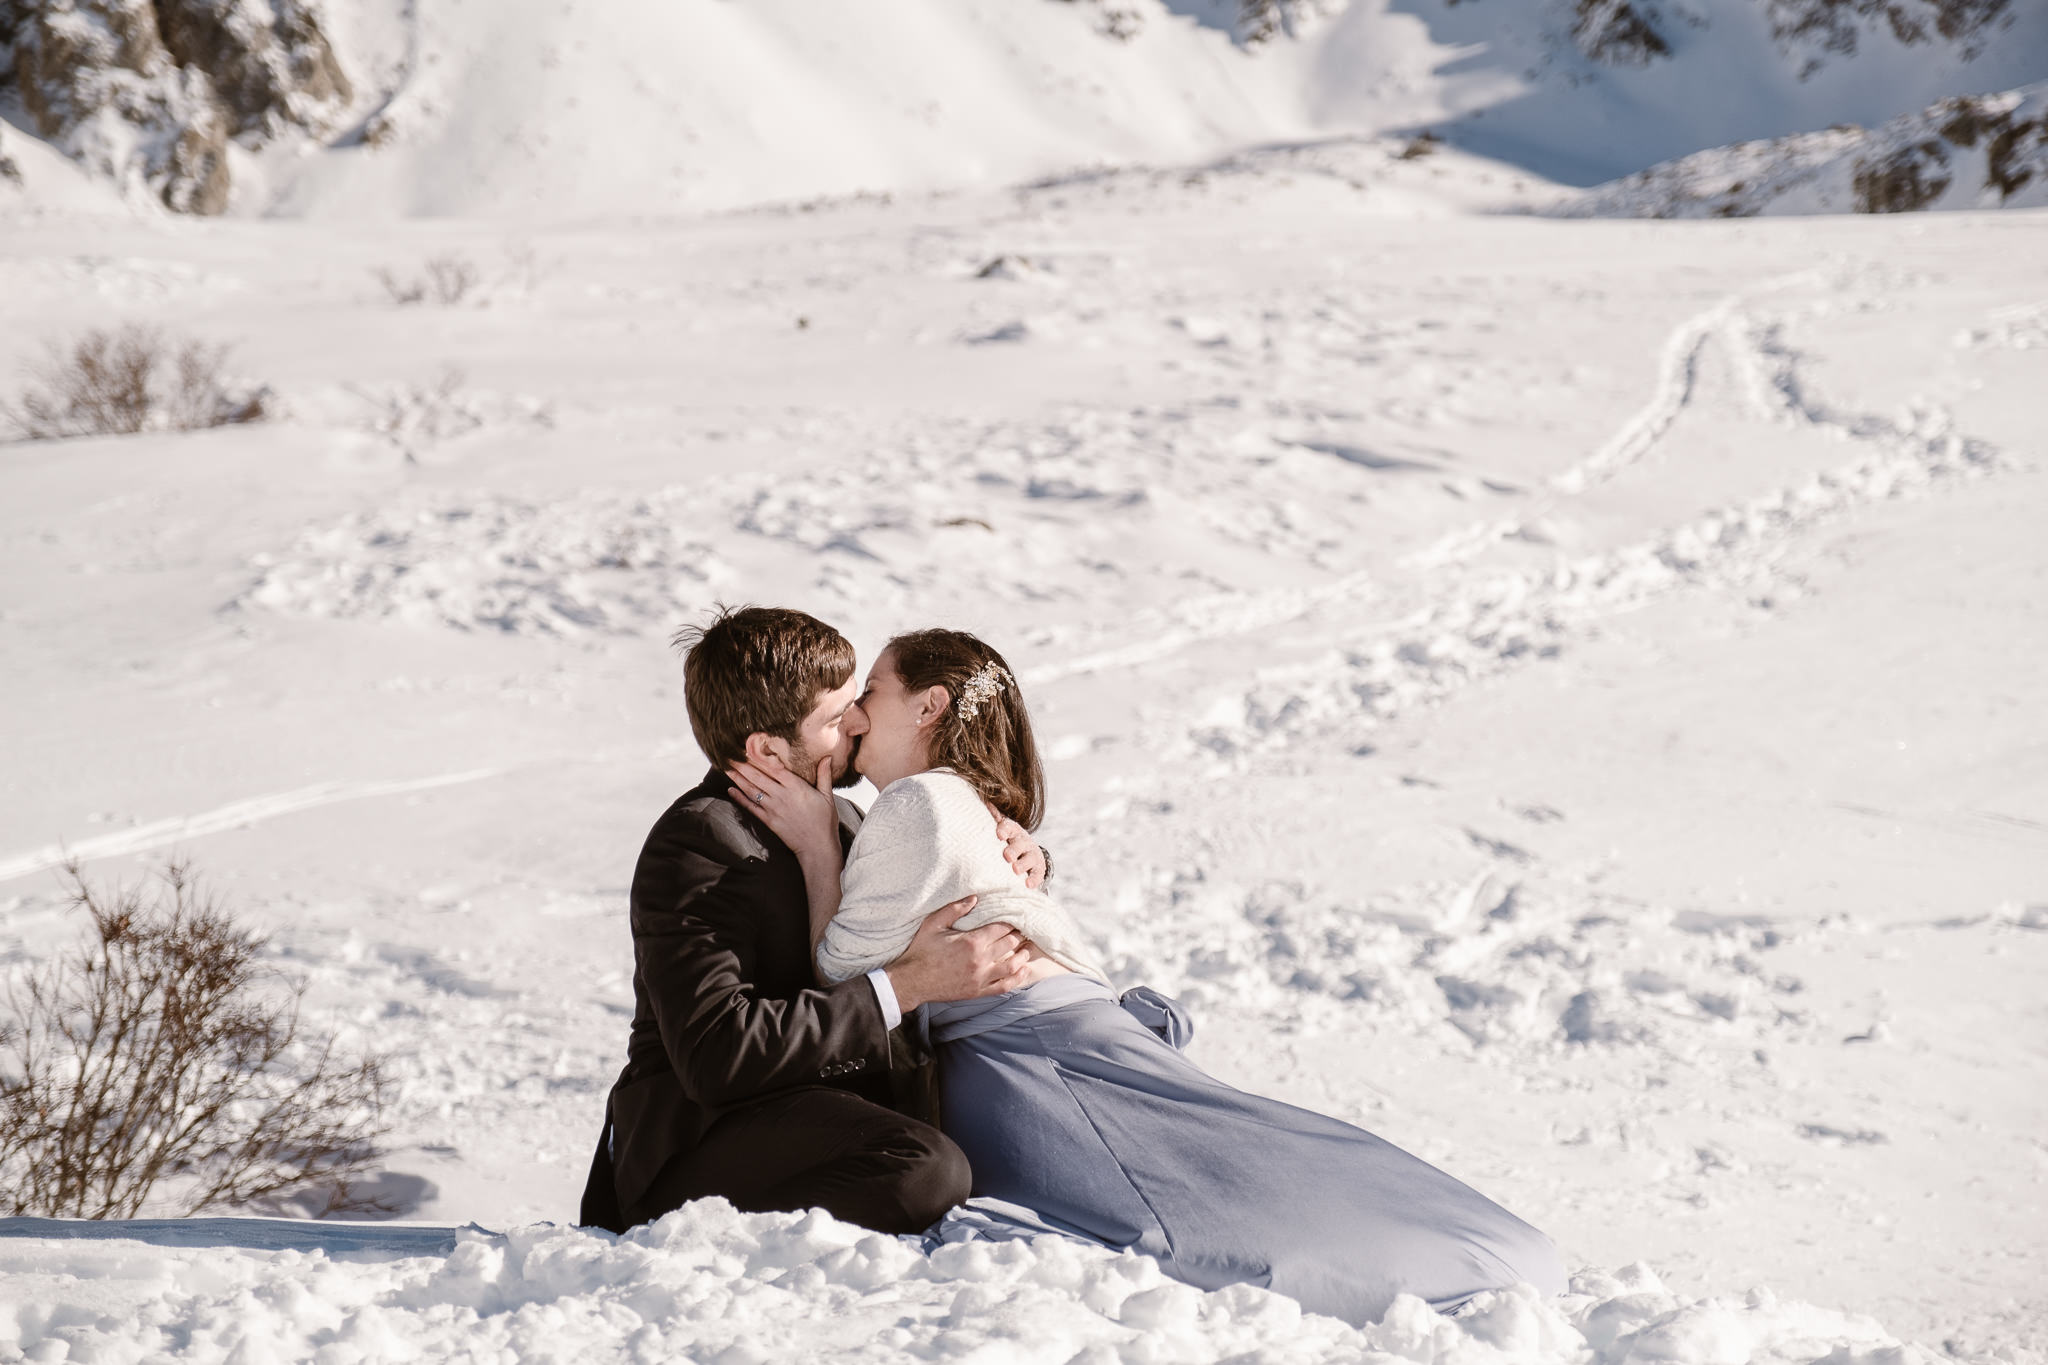 Bride and groom falling over in snow during first kiss, winter mountain elopement, Colorado snow elopement, winter wedding